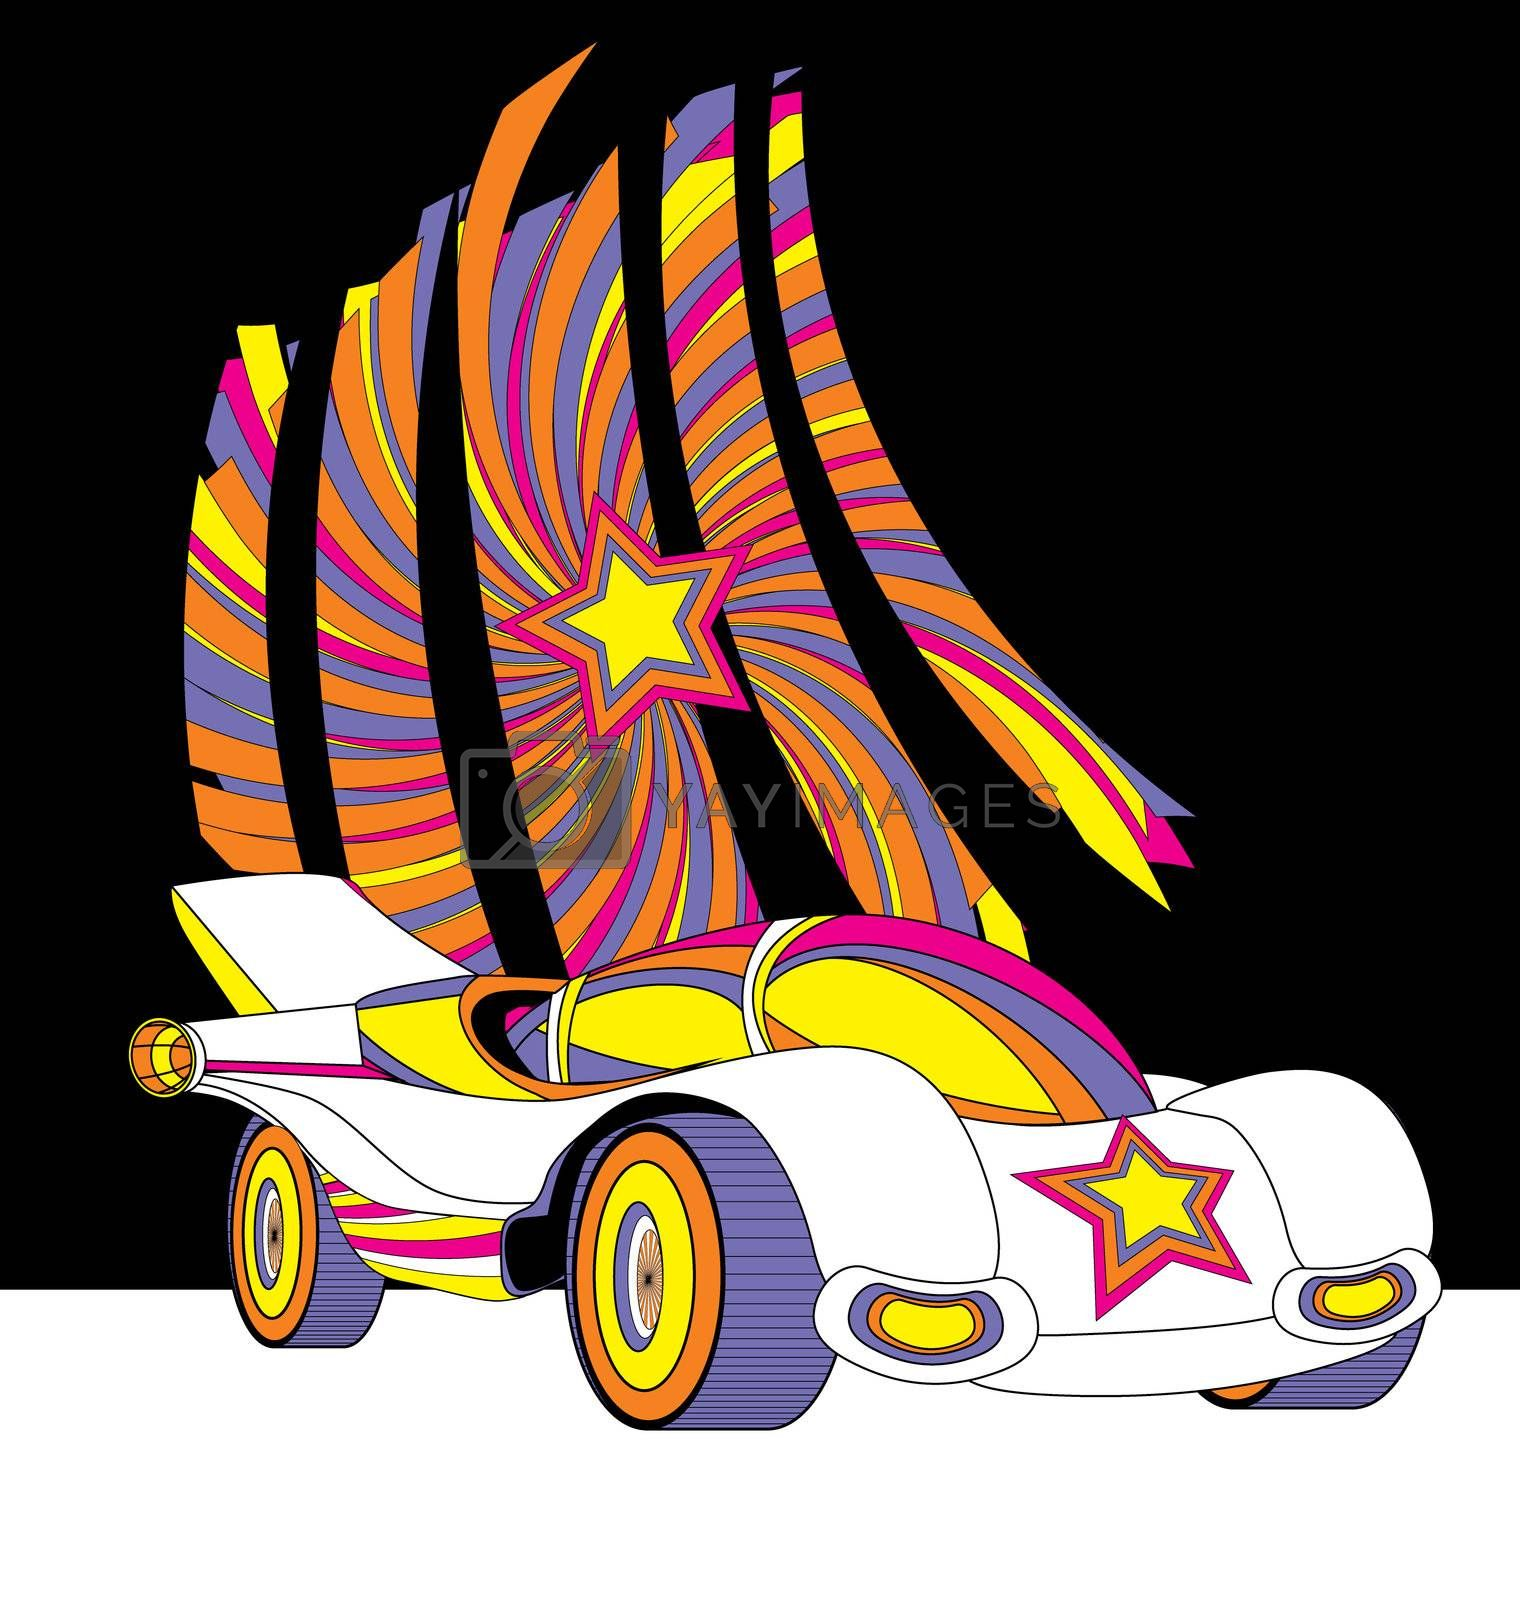 vector style race car with star decor colorful futuristic illustration